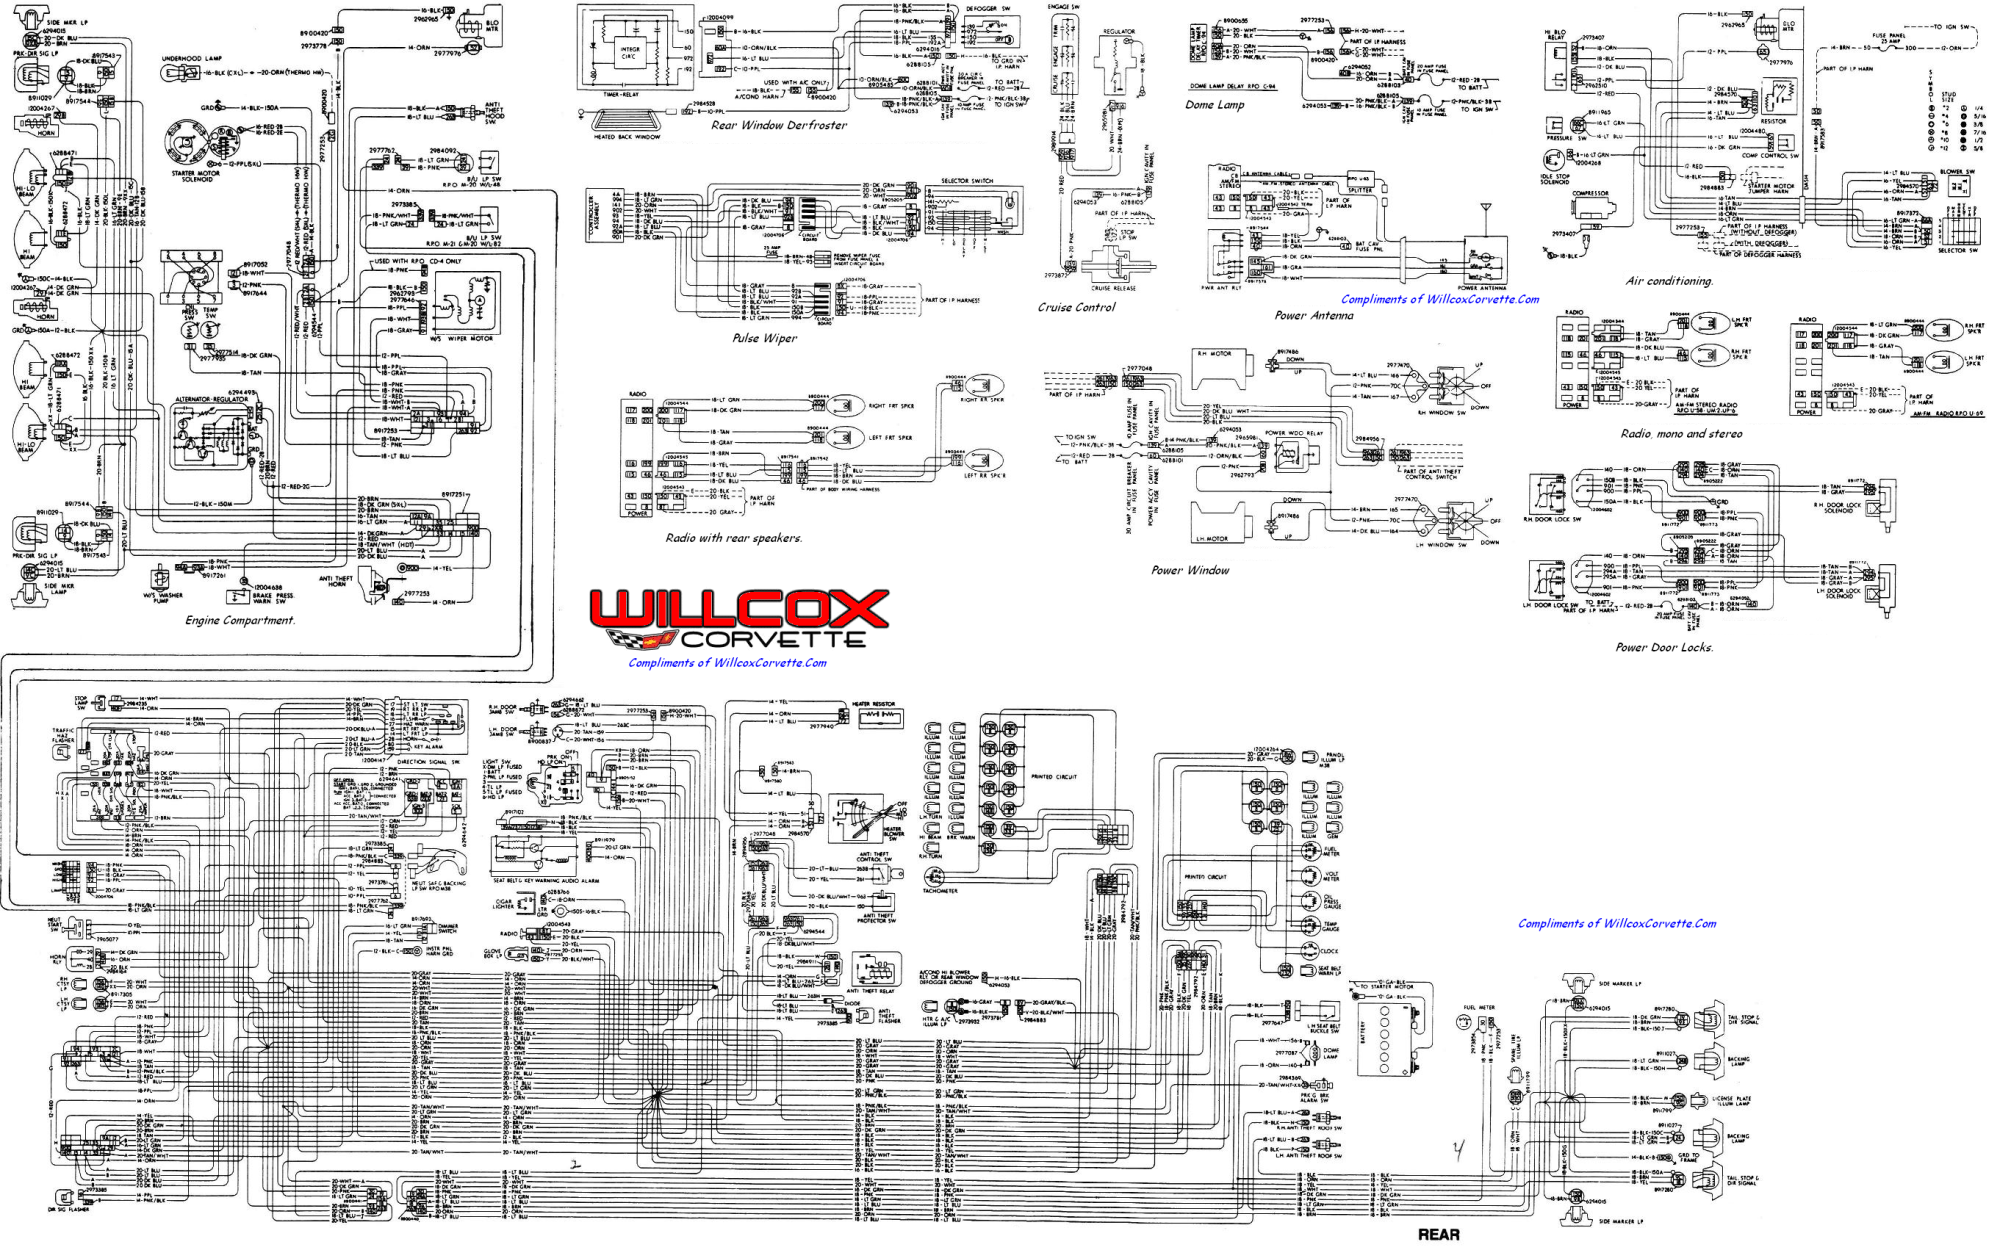 hight resolution of 1978 corvette tracer schematic willcox corvette inc rh repairs willcoxcorvette com 2002 mitsubishi montero sport engine